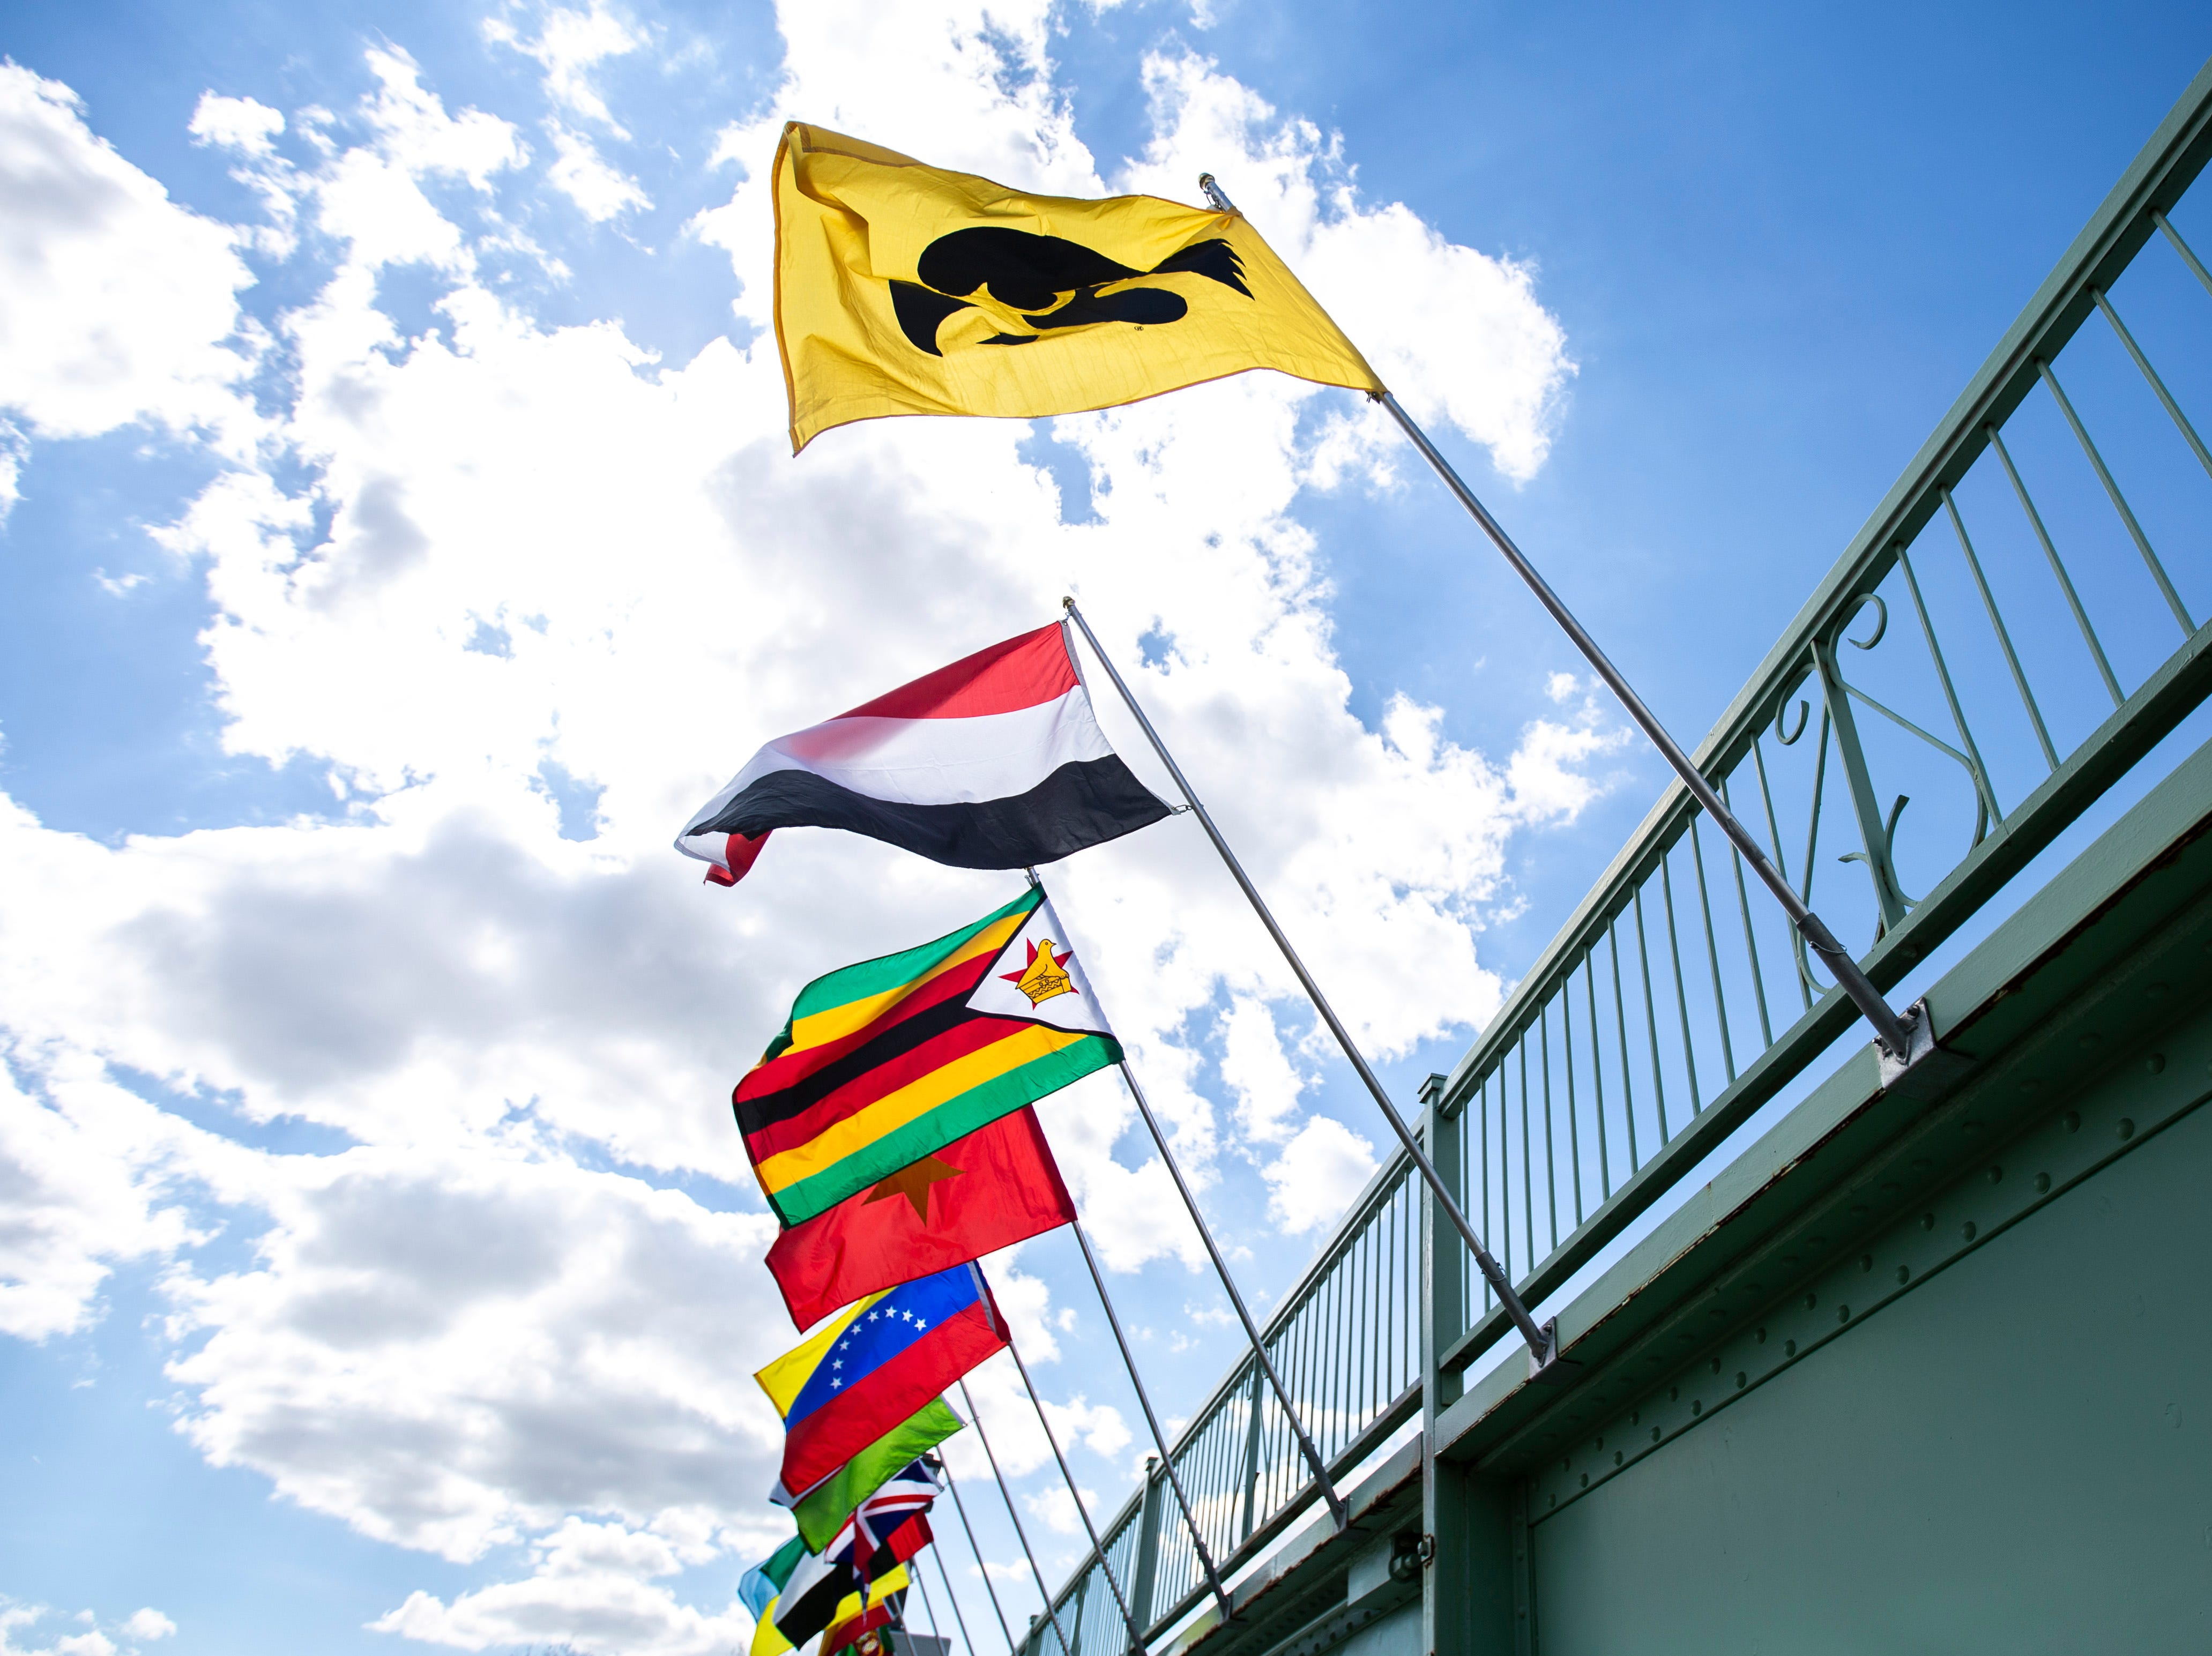 """Flags wave in the wind off of the Iowa Memorial Union bridge over the Iowa River as part of the """"Bridging Our World"""" display during the last day of finals week, Friday, May 10, 2019, on the University of Iowa campus in Iowa City, Iowa."""